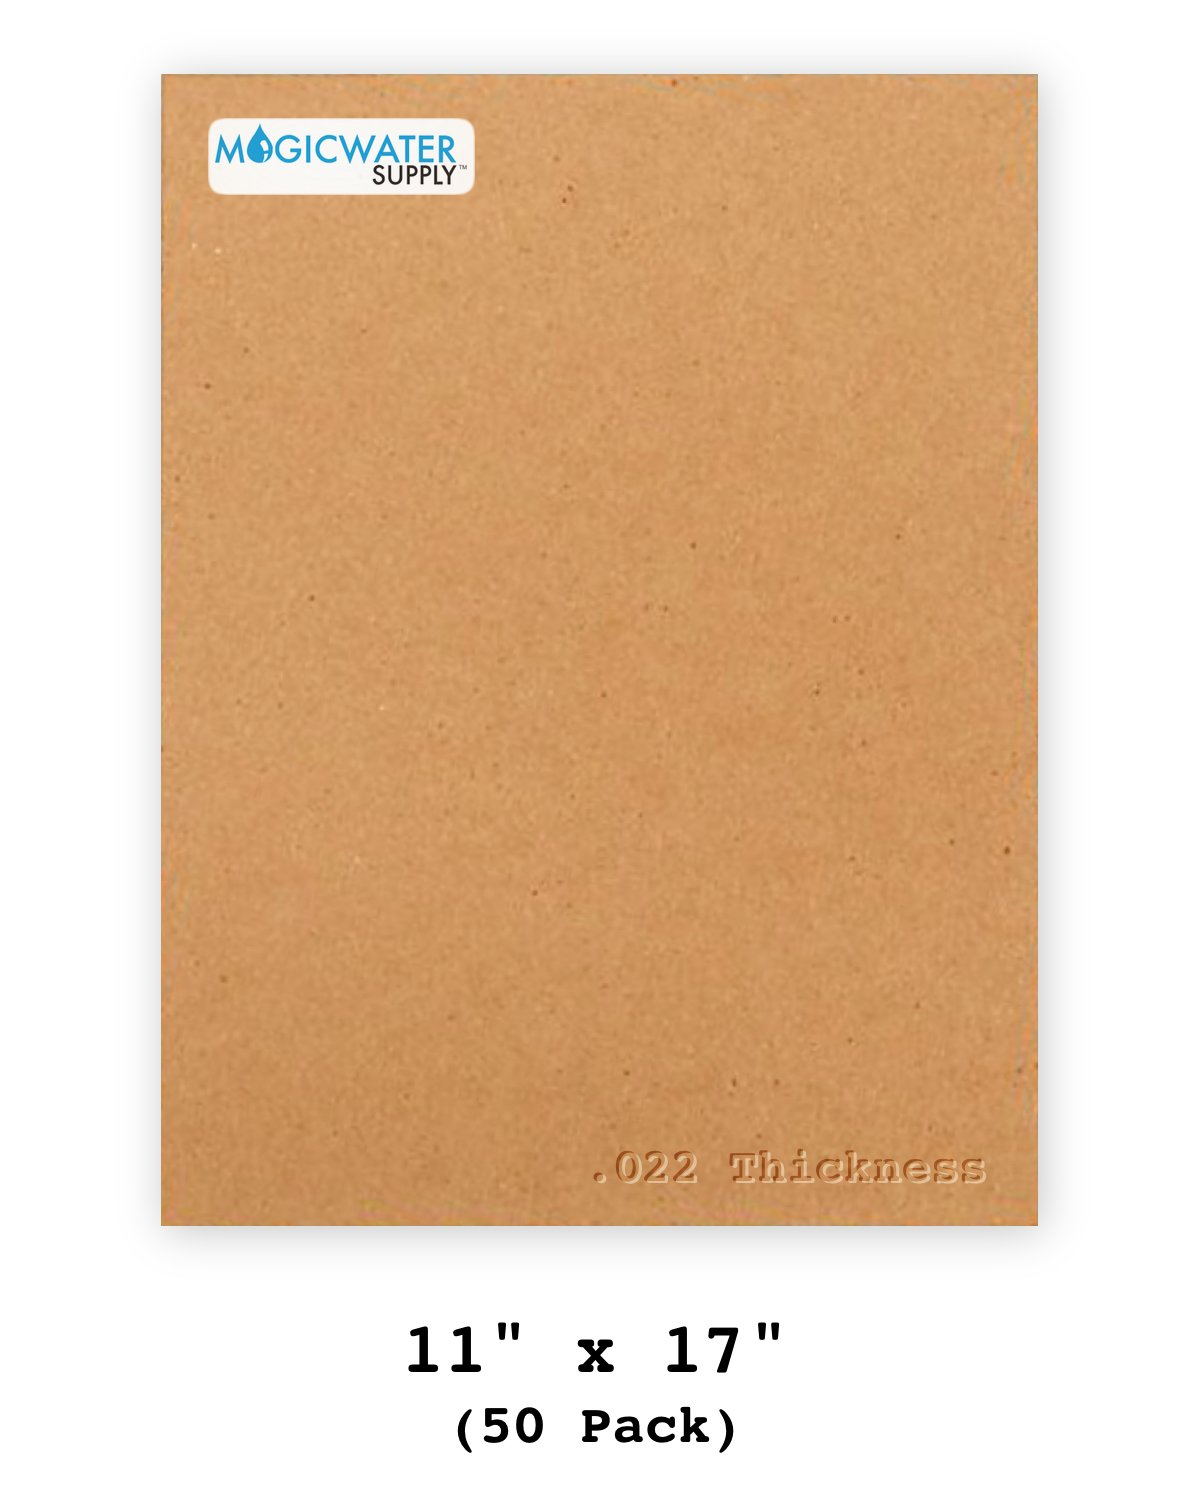 50 Chipboard Sheets 11 x 17 inch - 22pt (Point) Light Weight Brown Kraft Cardboard for Scrapbooking & Picture Frame Backing (.022 Caliper Thick) Paper Board | MagicWater Supply